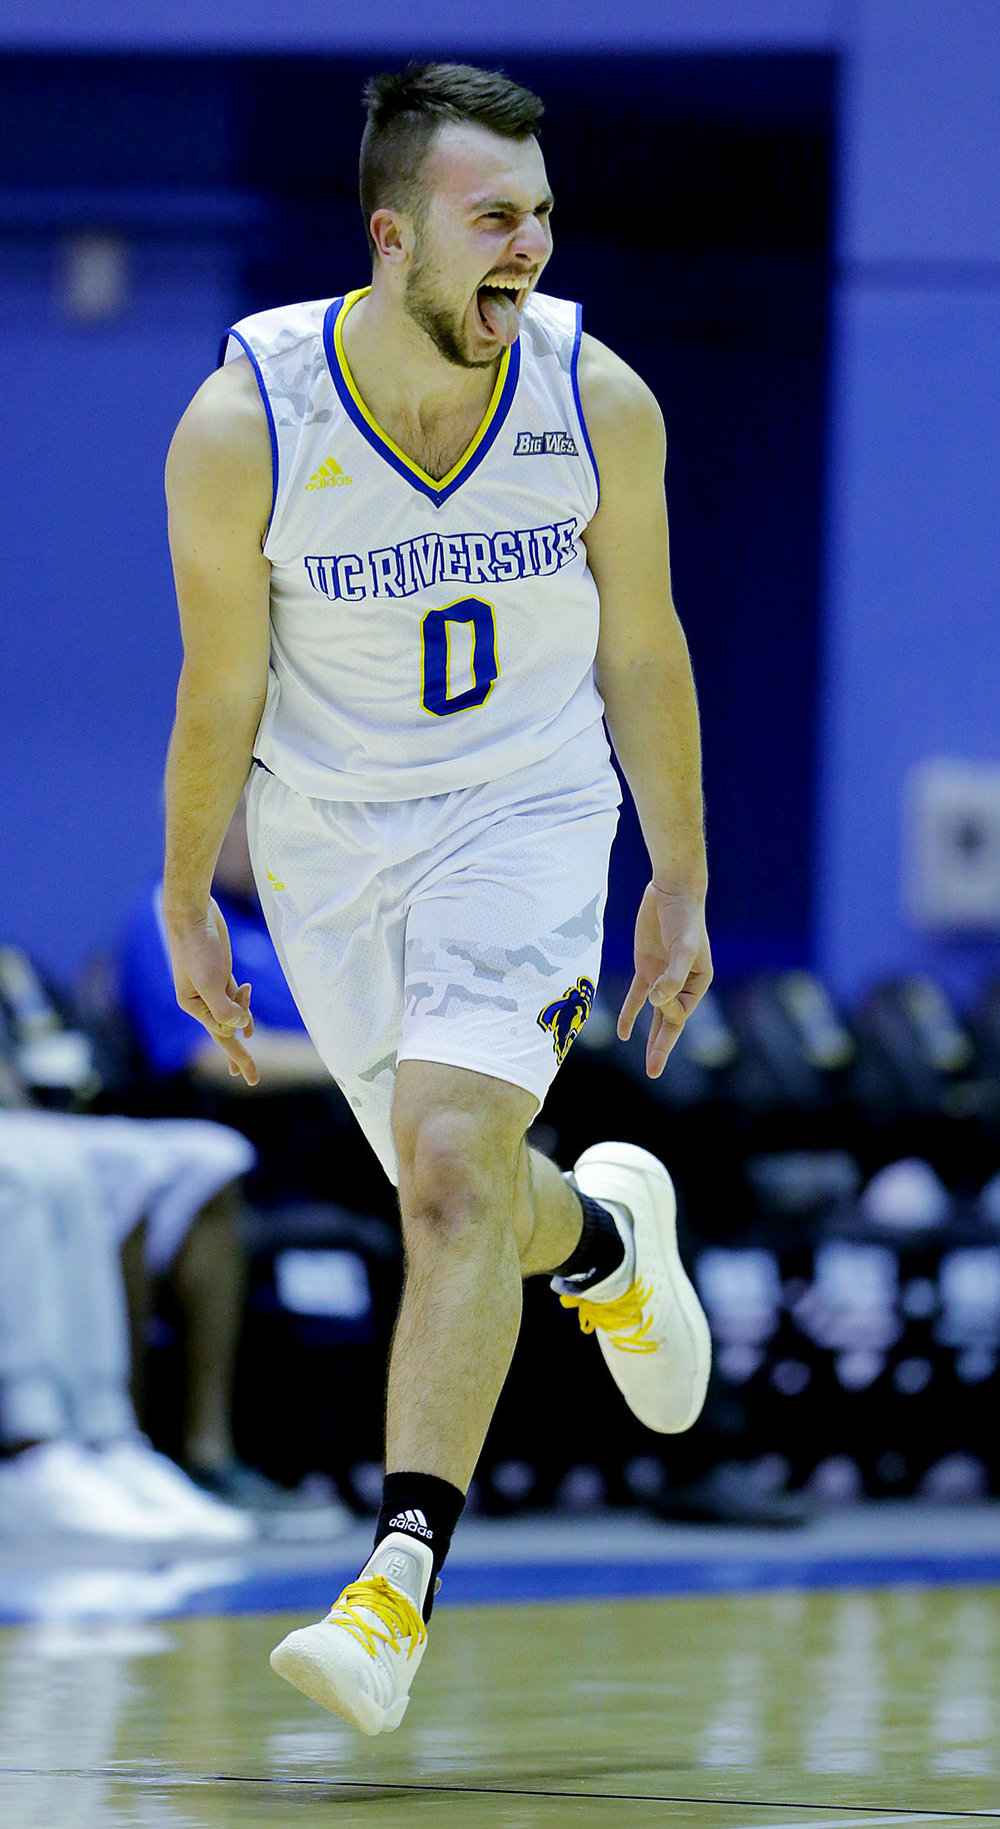 UC Riverside Highlanders guard Dragan Elkaz #0 celebrates after sinking a three point shot against  theLoyola Marymount Lions in the first half of the game at the Student Recreation Center at UCR in Riverside on Saturday, December 22, 2018.